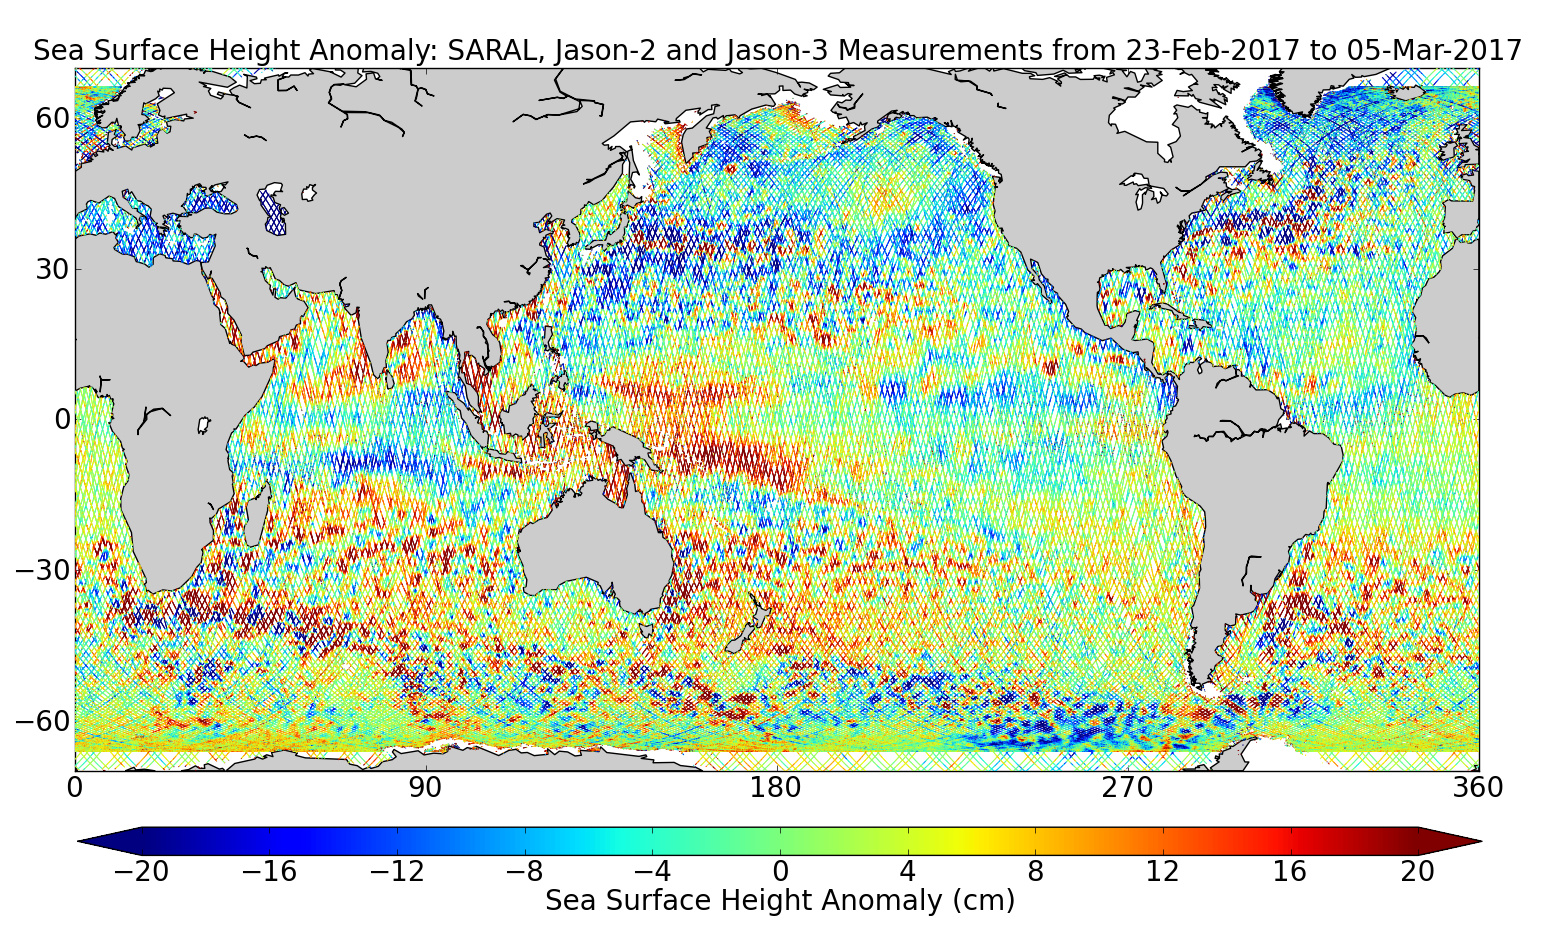 Sea Surface Height Anomaly: SARAL, Jason-2 and Jason-3 Measurements from 23-Feb-2017 to 05-Mar-2017